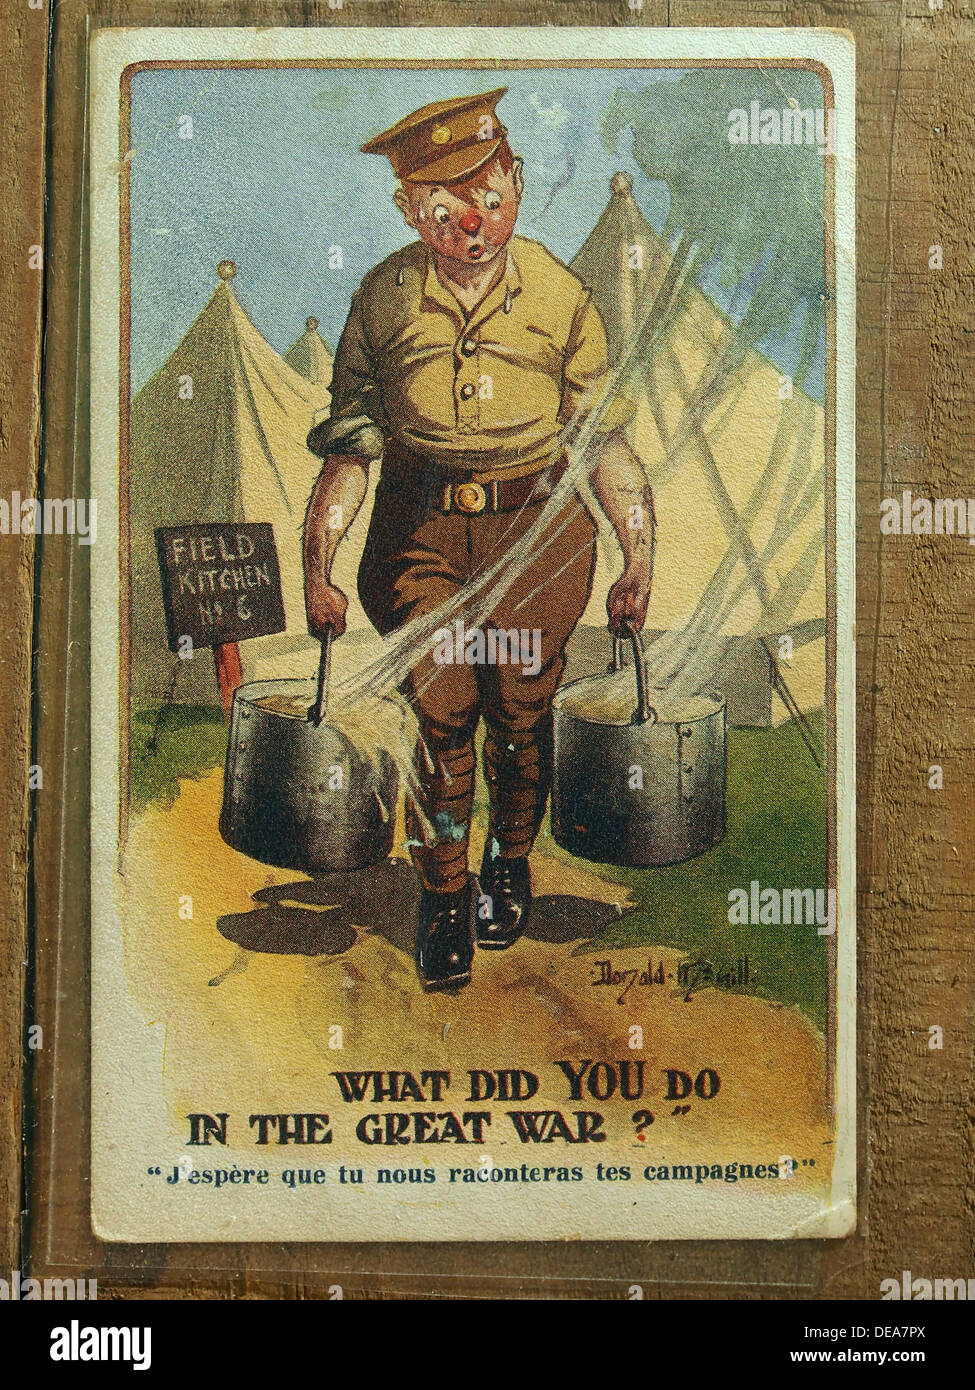 What did you do in the Great War card, Muse Somme 1916, 072 - Stock Image